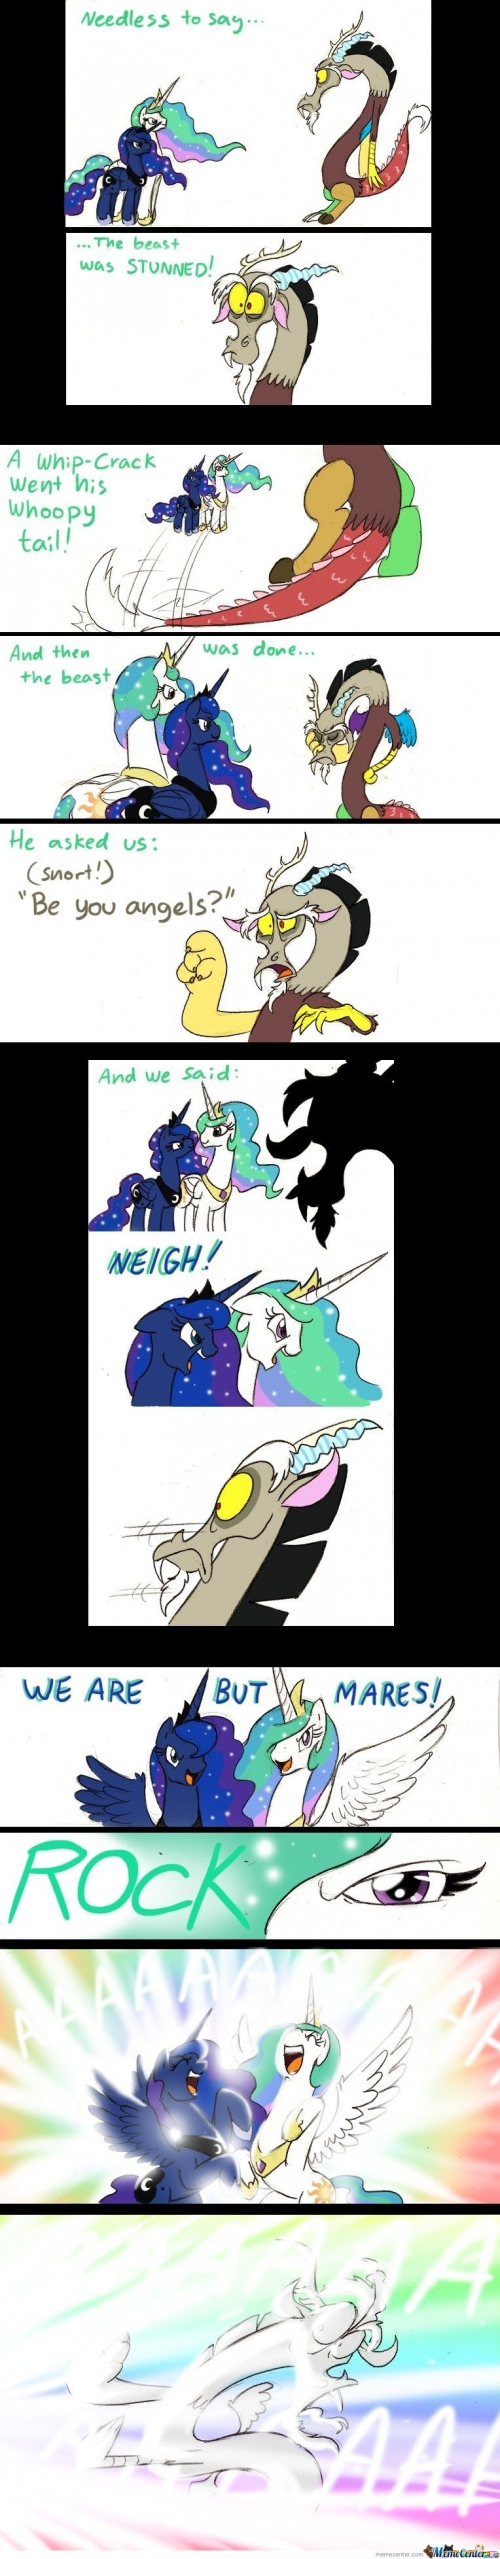 Needles to say the beast was stunned - My Little Pony Comic